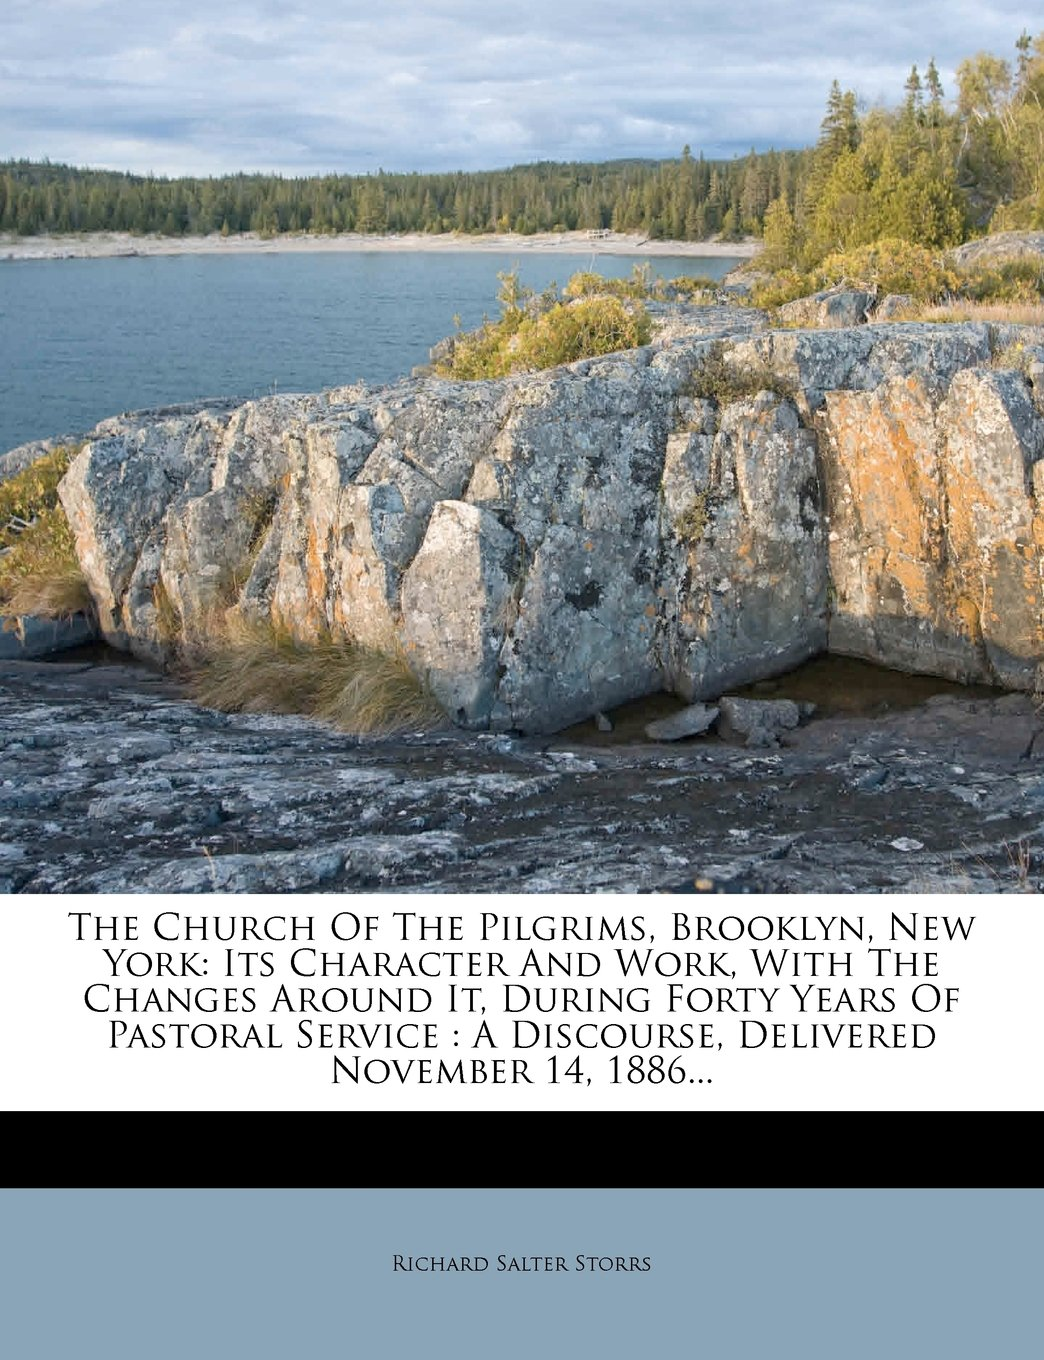 Read Online The Church Of The Pilgrims, Brooklyn, New York: Its Character And Work, With The Changes Around It, During Forty Years Of Pastoral Service : A Discourse, Delivered November 14, 1886... PDF